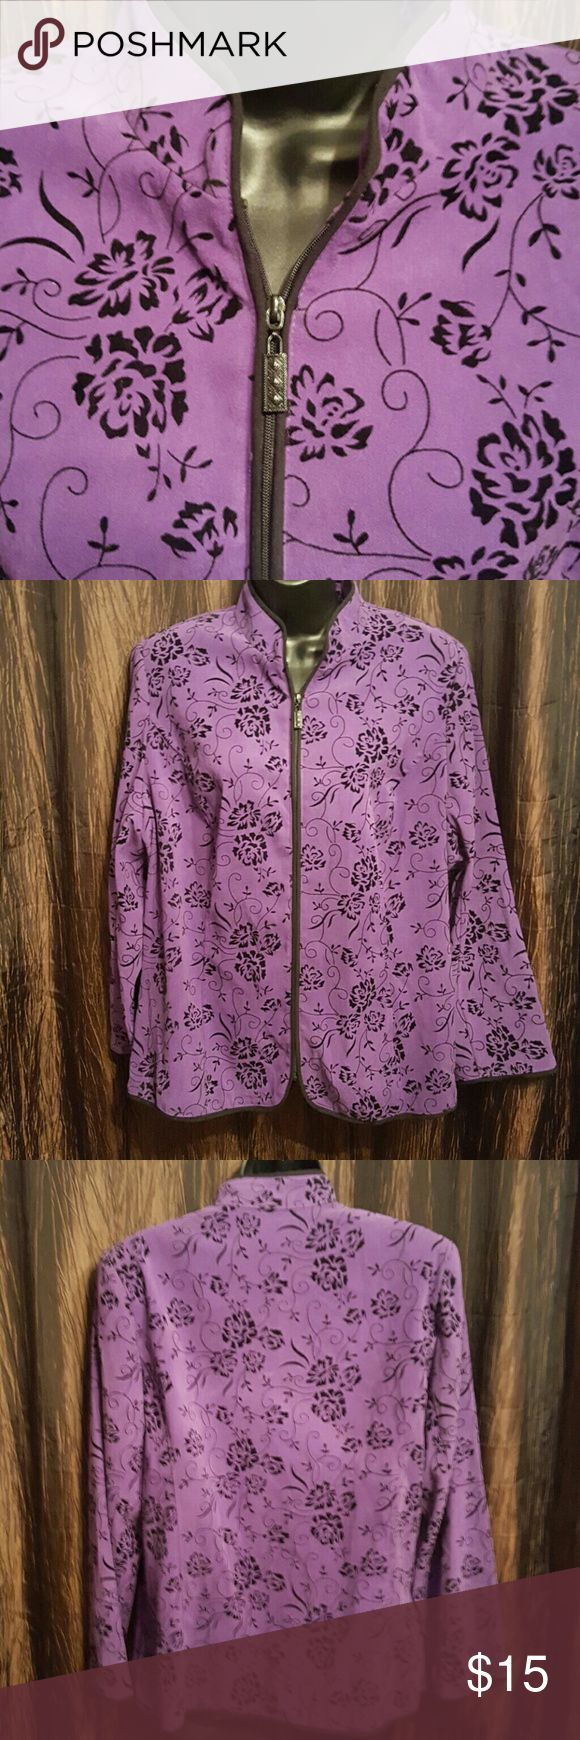 "Zip up Beautiful Purple & Black zip up Blazer/Jacket. 97% Polyester & 3% Spandex. Length 27"" Arms measures 23"" Bust measures up too 44 notations women Jackets & Coats Blazers"